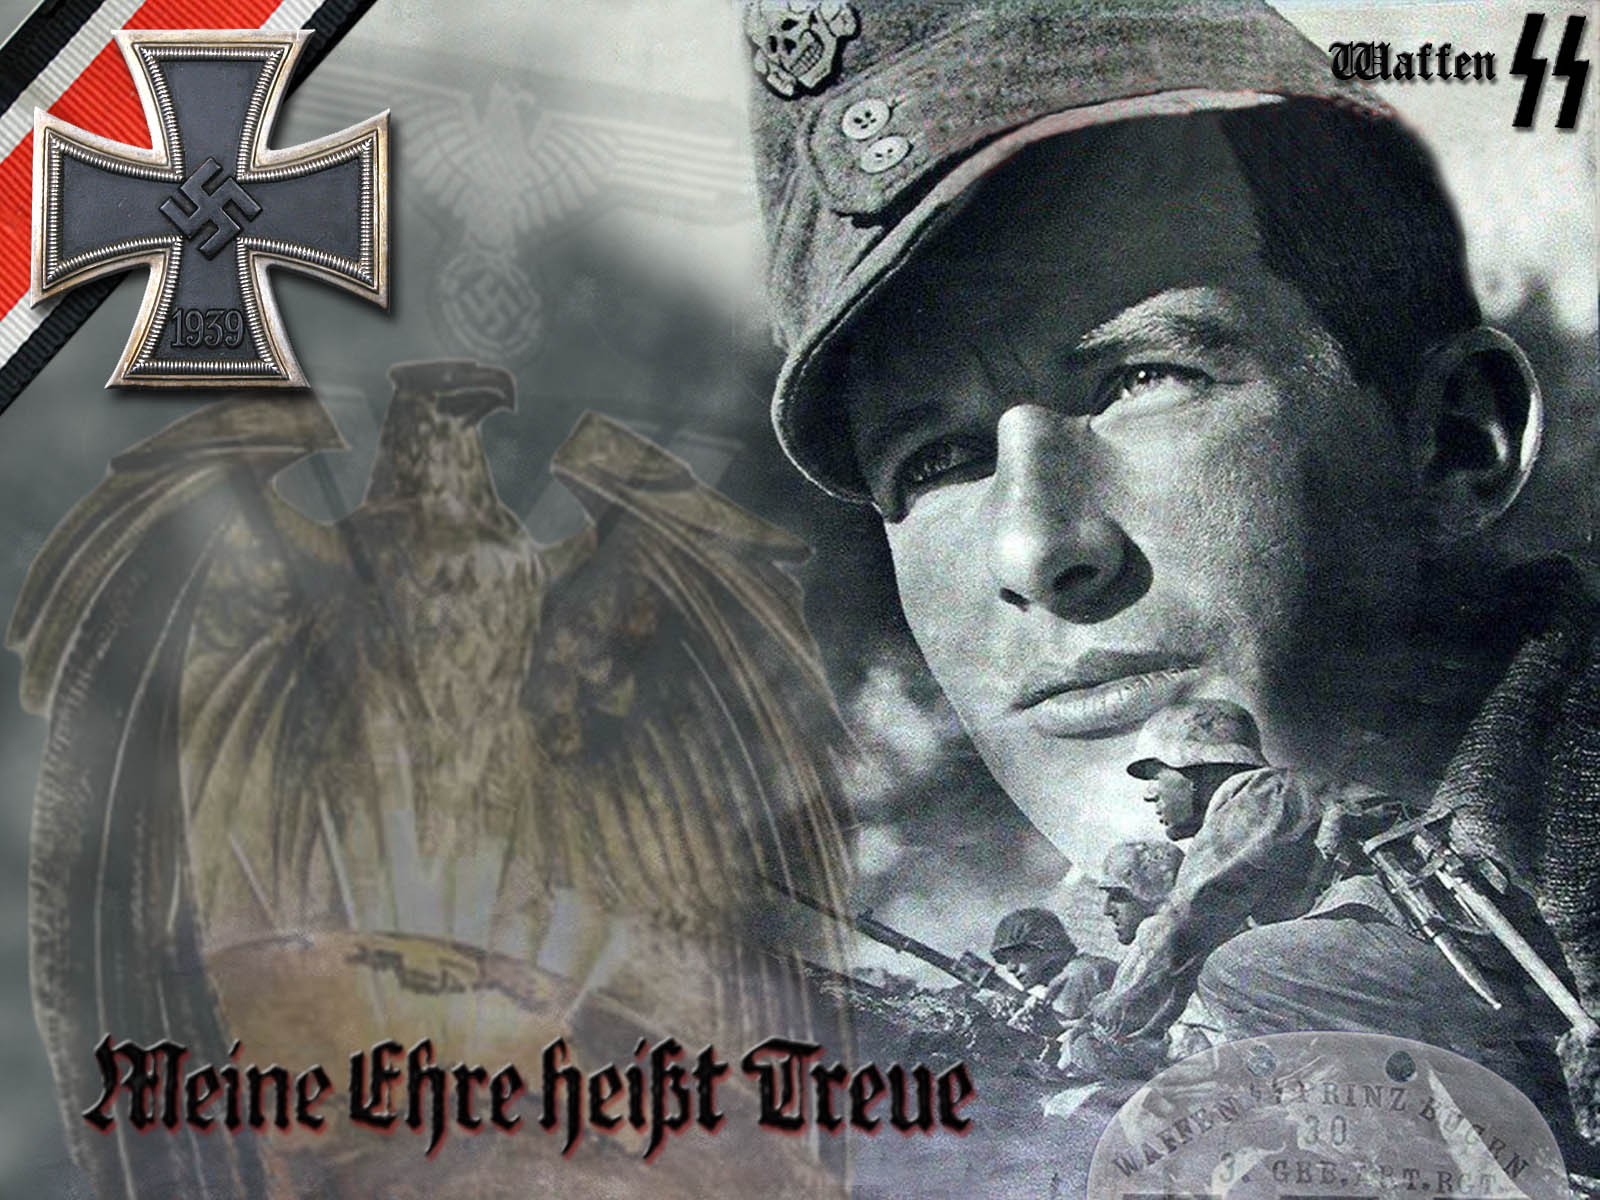 waffen ss wallpapers   group picture image by tag   keywordpictures 1600x1200